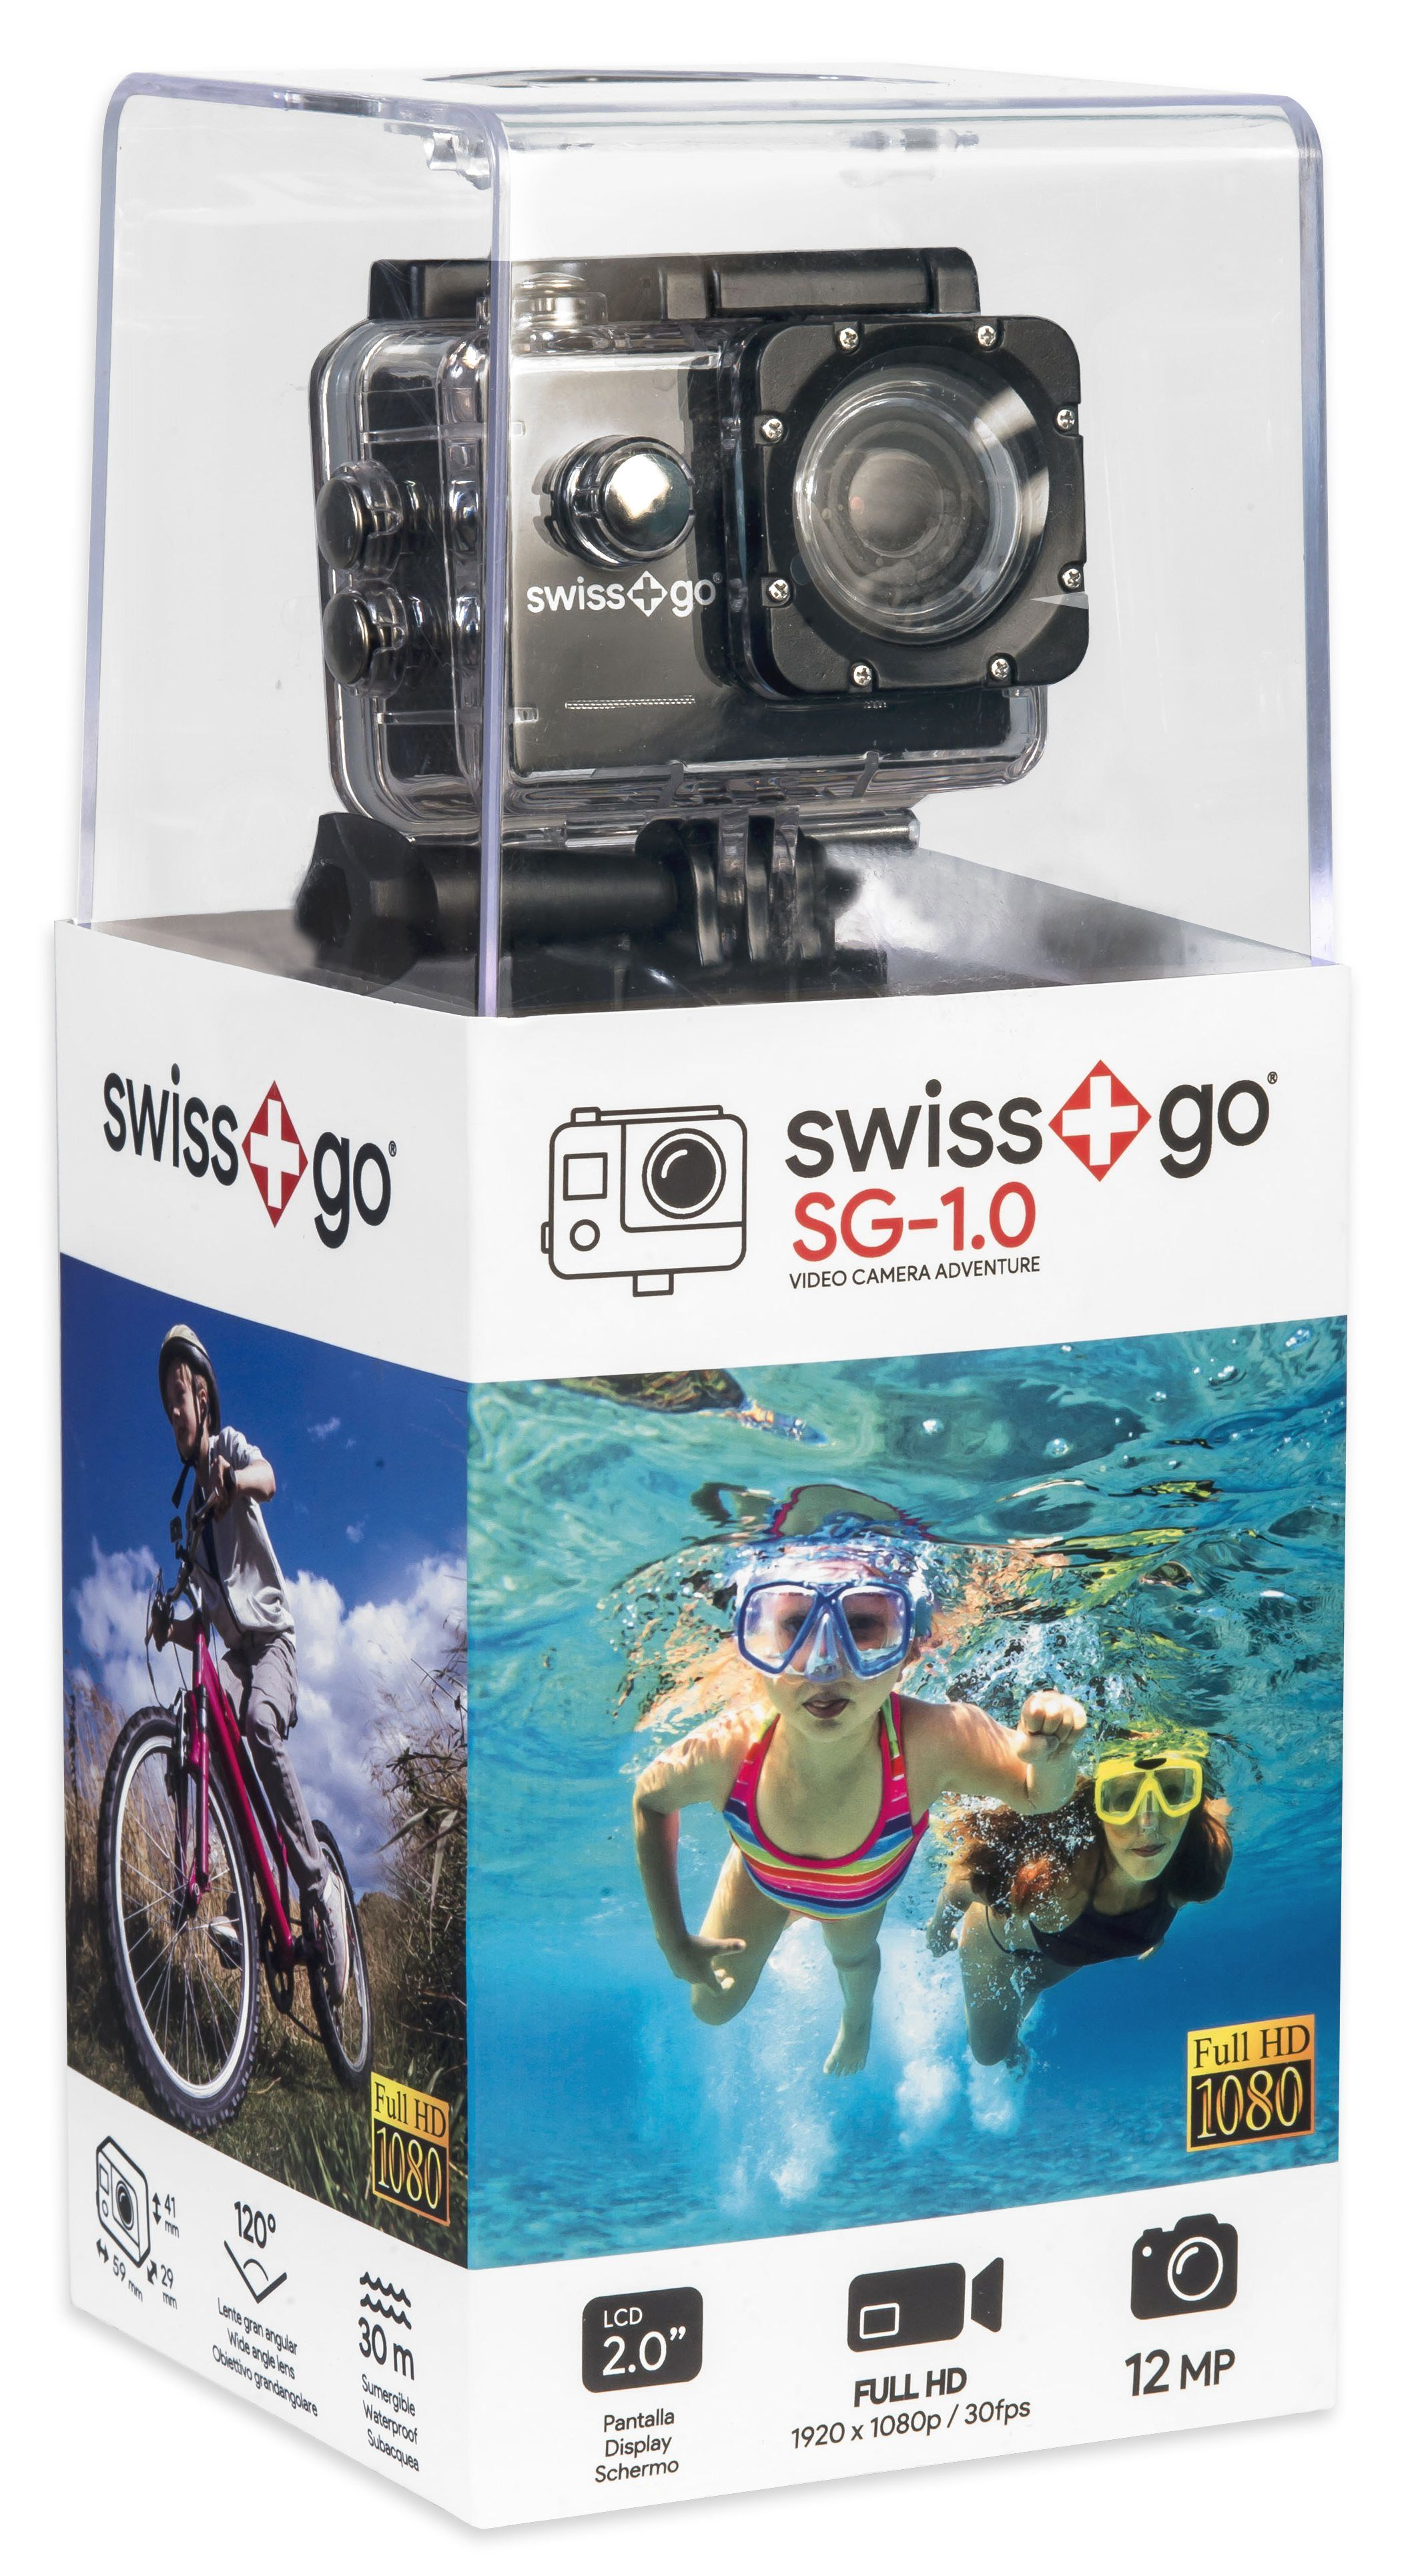 SWISS GO SG-1.8W 12MP WiFi FULL HD ACTION CAMERA NERA